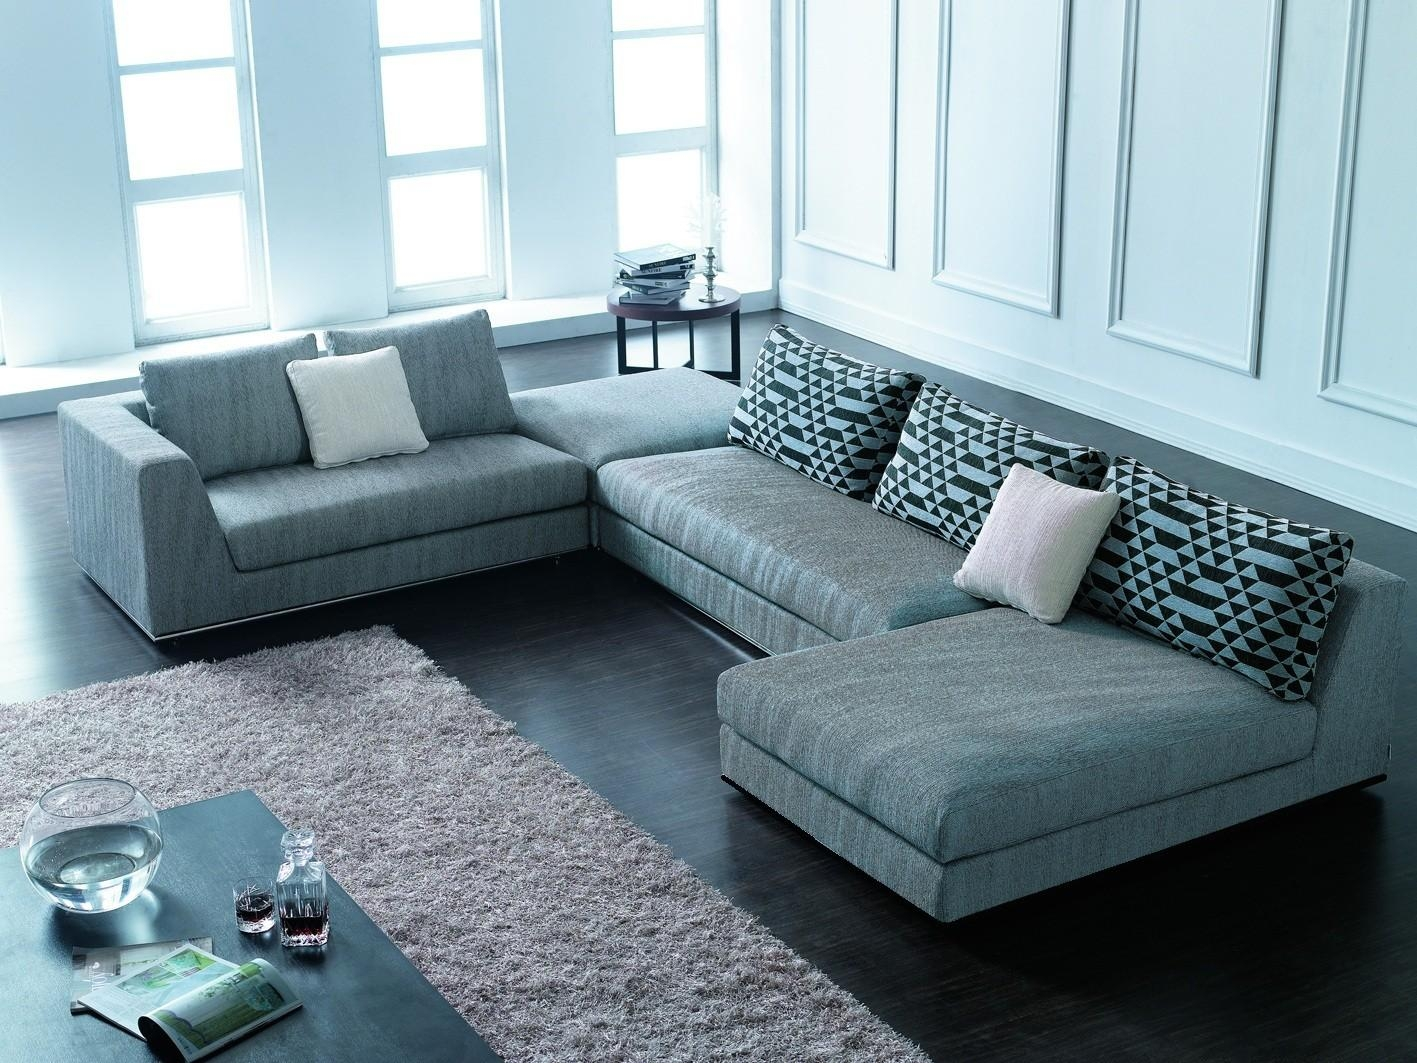 Modern Luxury Sectional Sofas 20 Inspirations Modern Sectional Sofas For Small Spaces